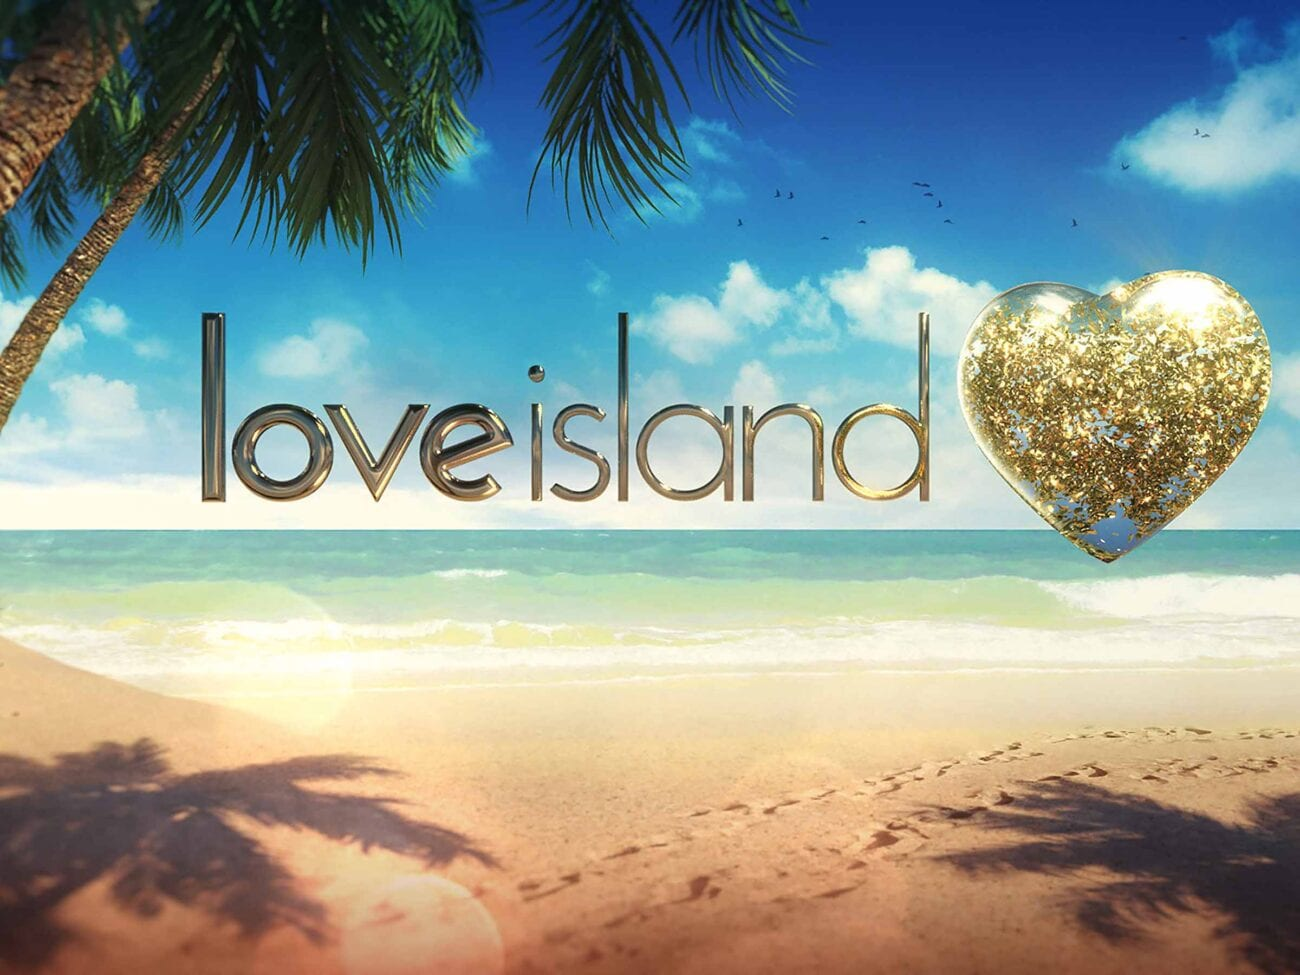 'Love Island USA' season two has officially been delayed. We've compiled some fan favorite cast moments of season one.